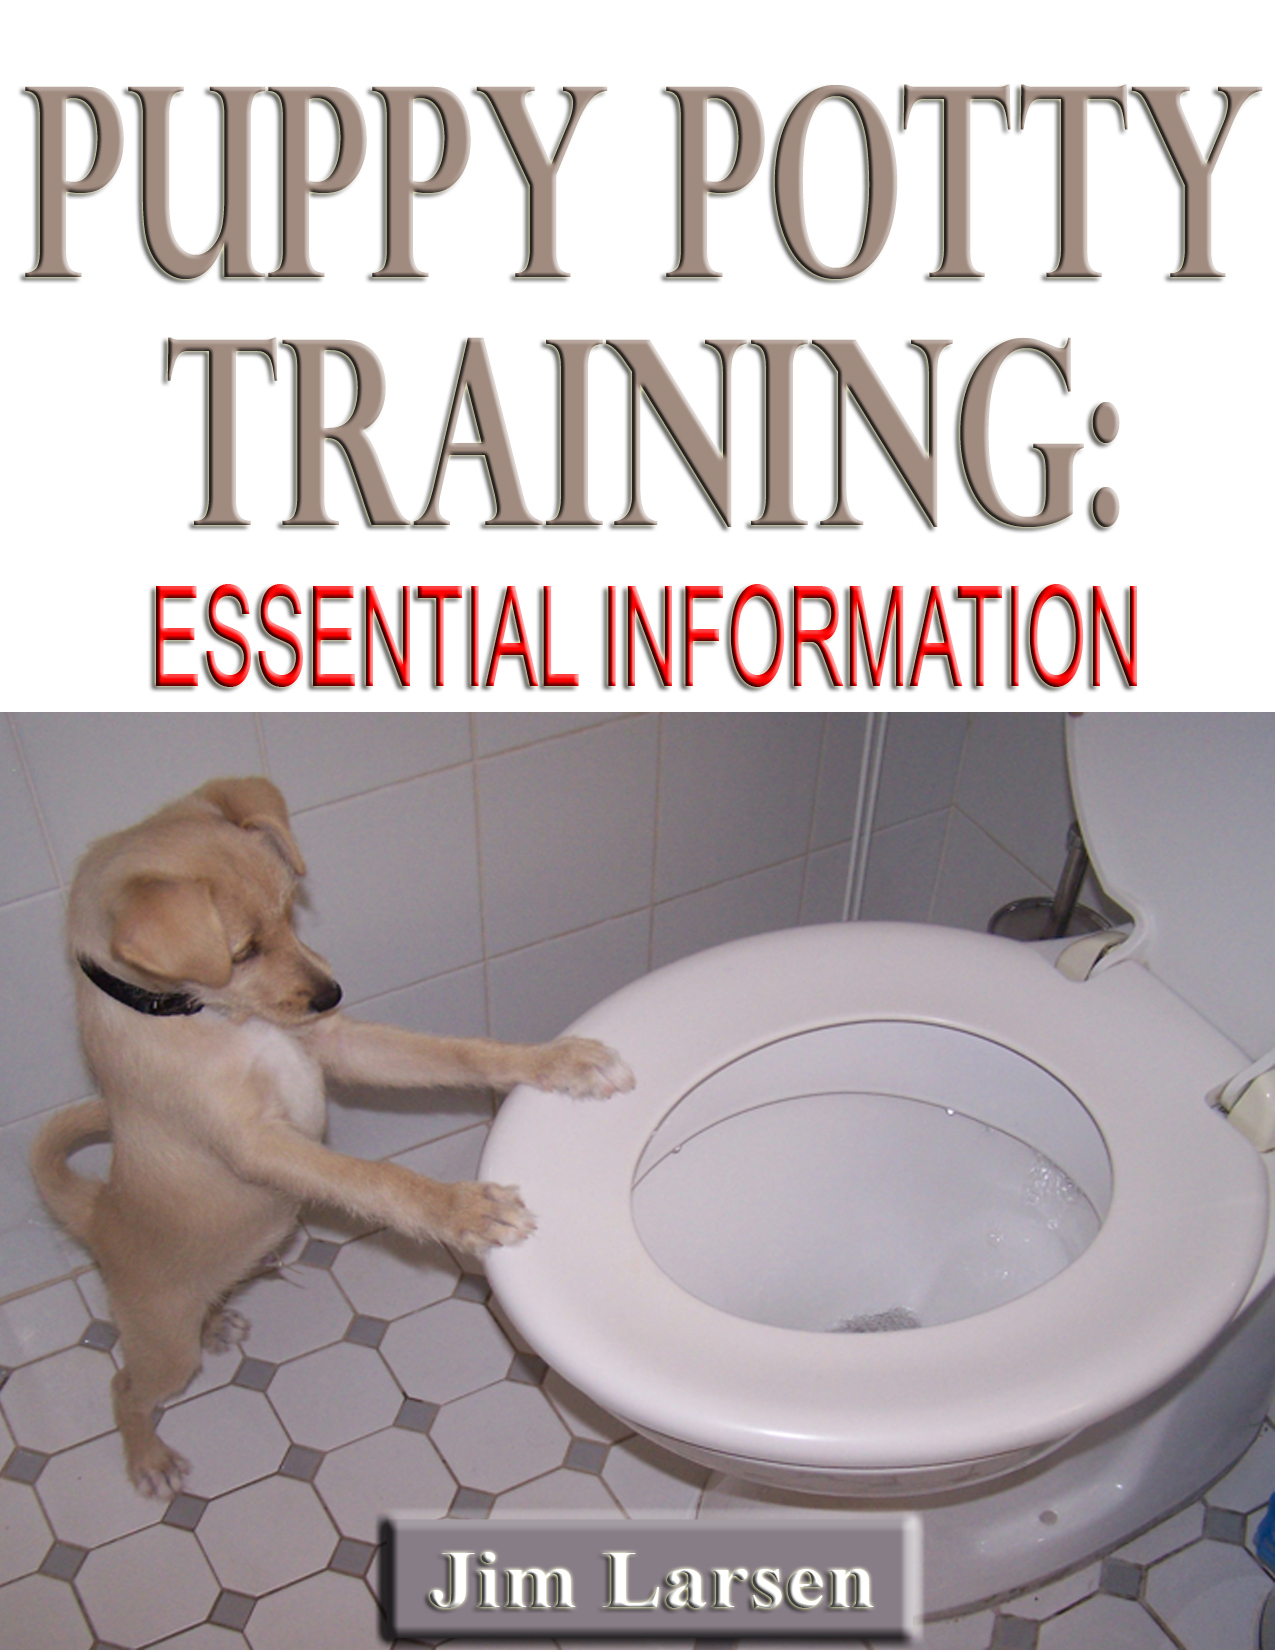 Puppy Potty Training: Essential Information